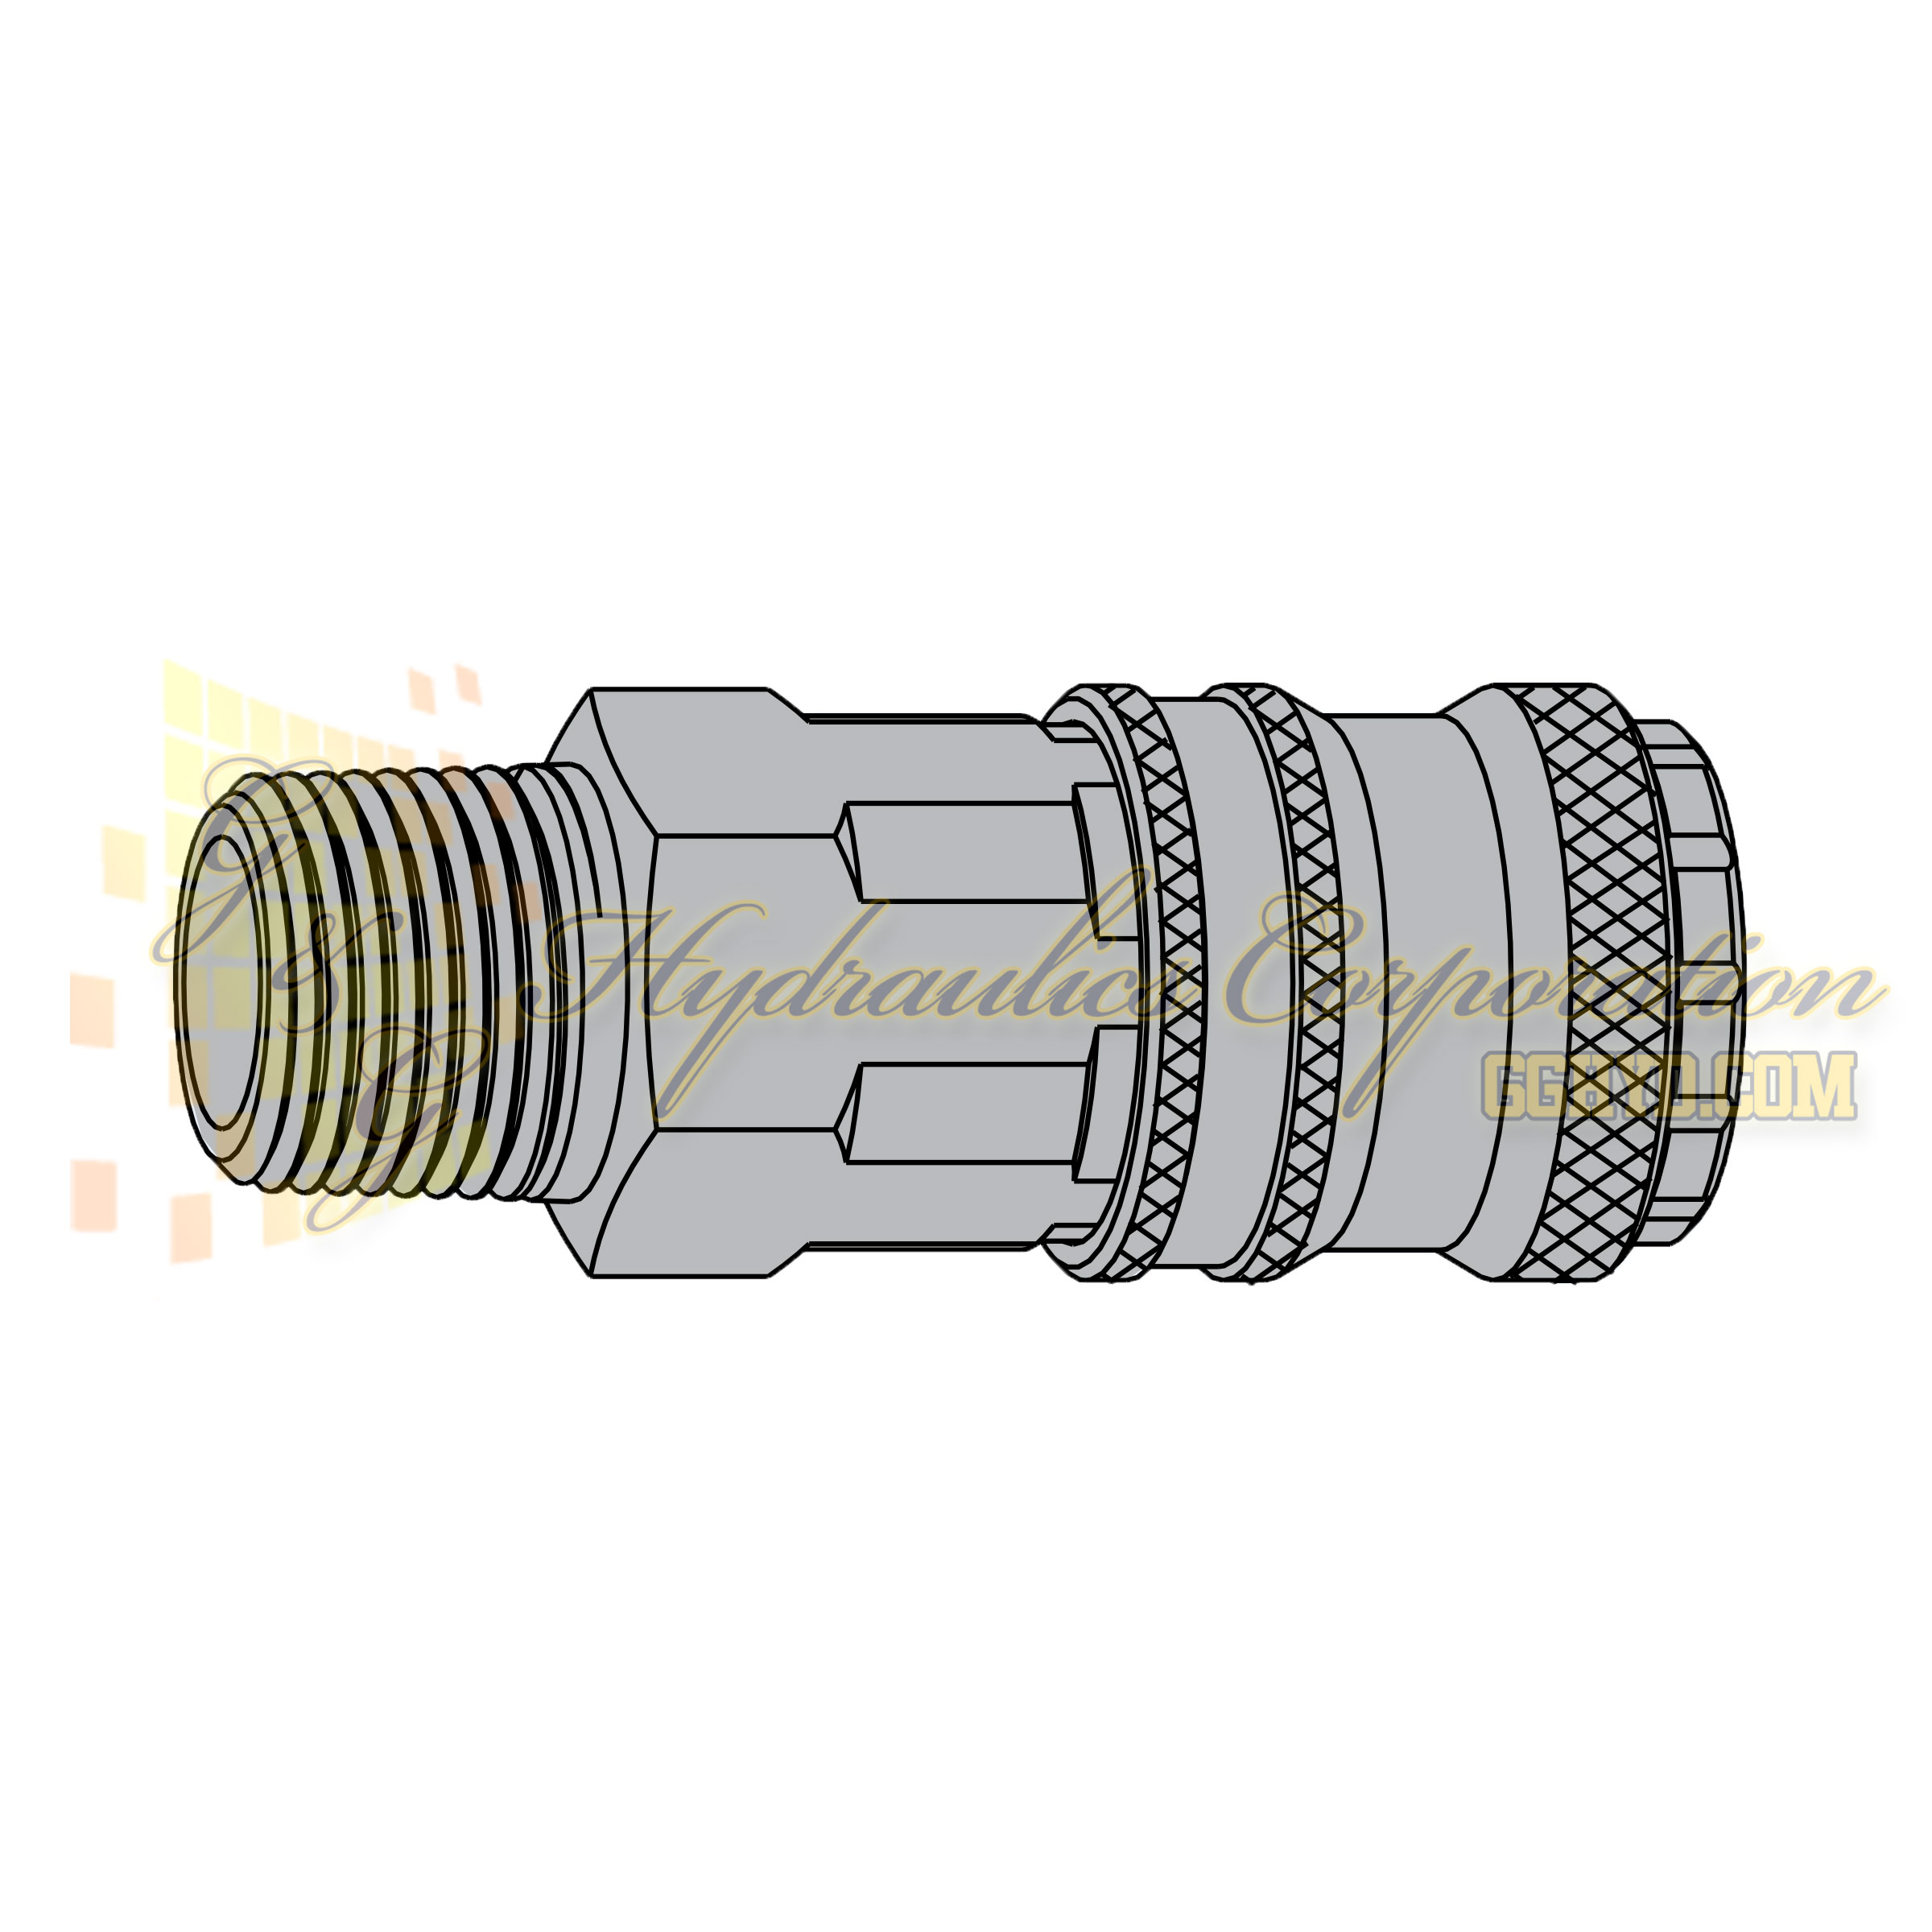 "10-310-2452 CEJN Quick Disconnect eSafe Vented Safety Coupler, 1/4"" NPT Male Thread, 232 PSI (16 bar)"